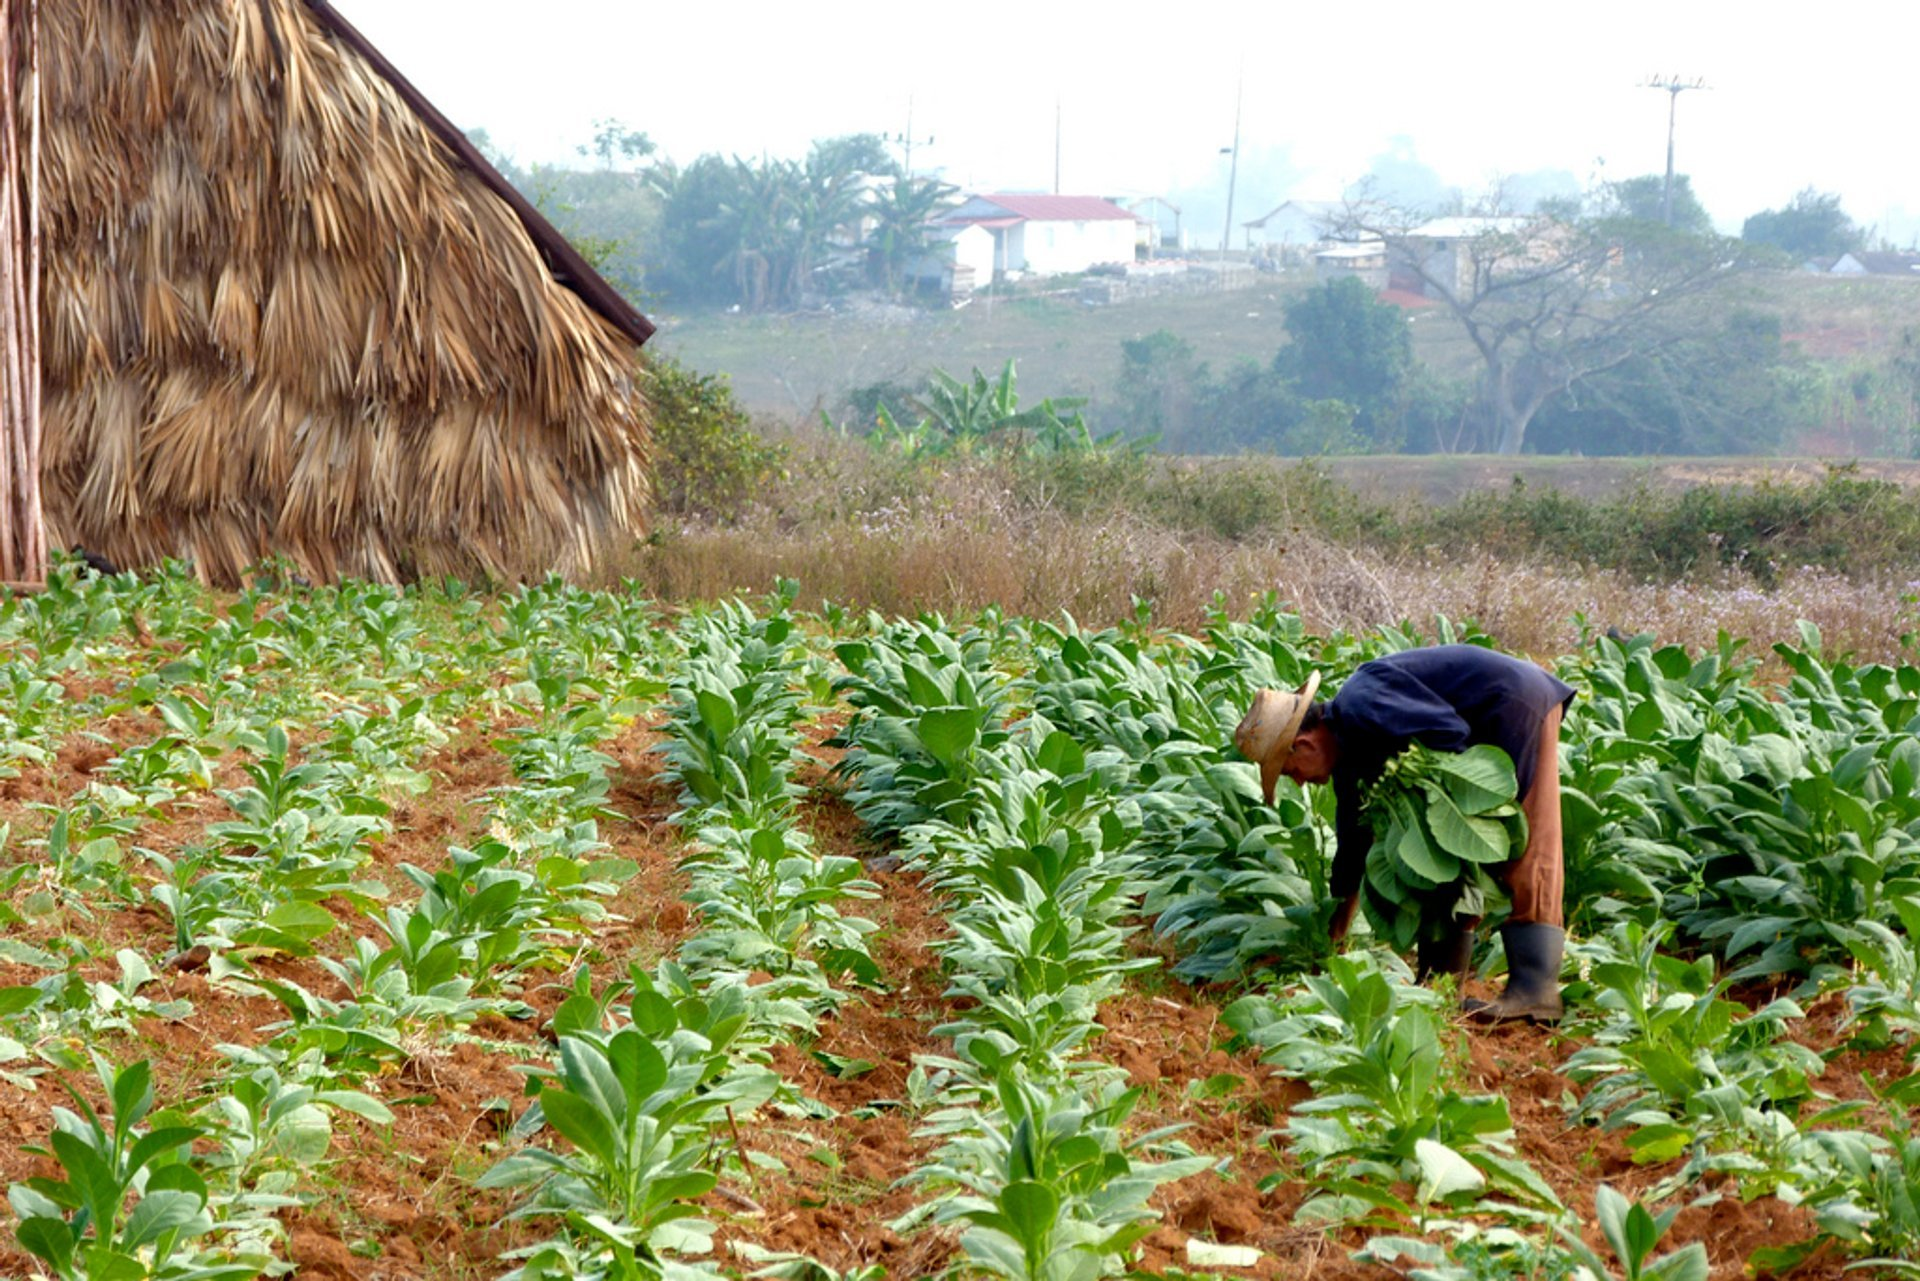 Harvesting tobacco in Vinales